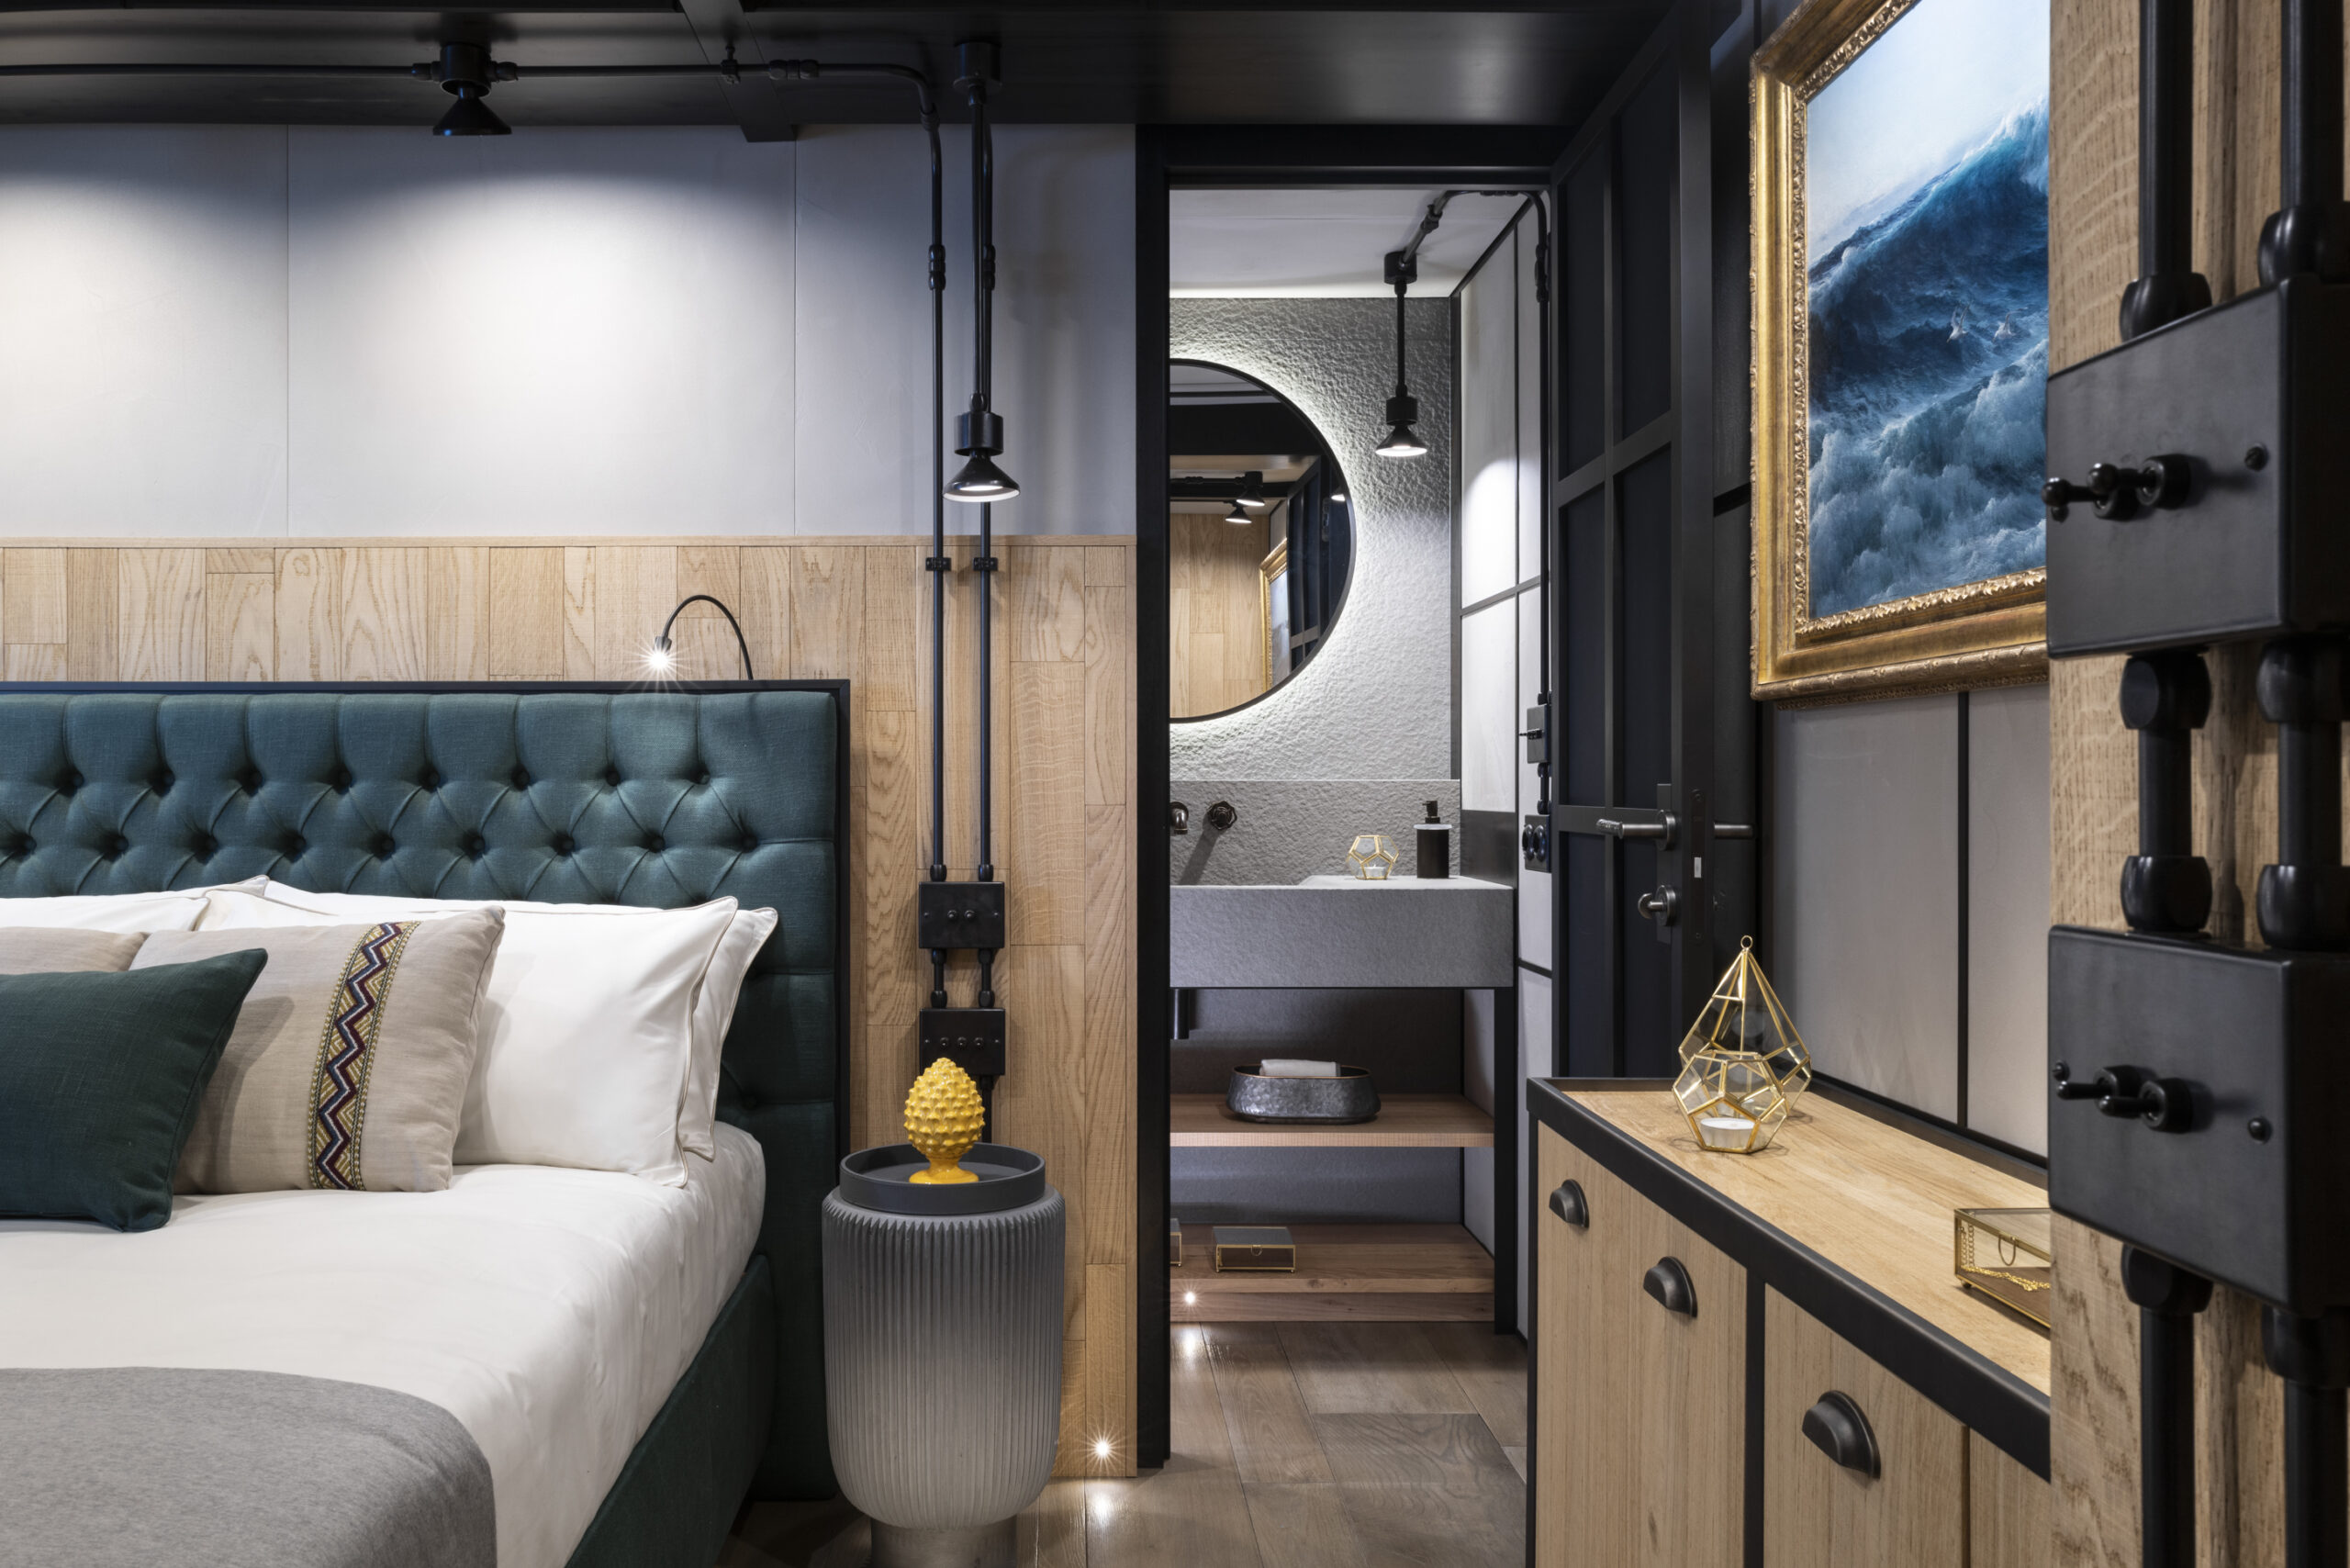 alternate angle of bedroom and living quarters aboard the Flexplorer 130